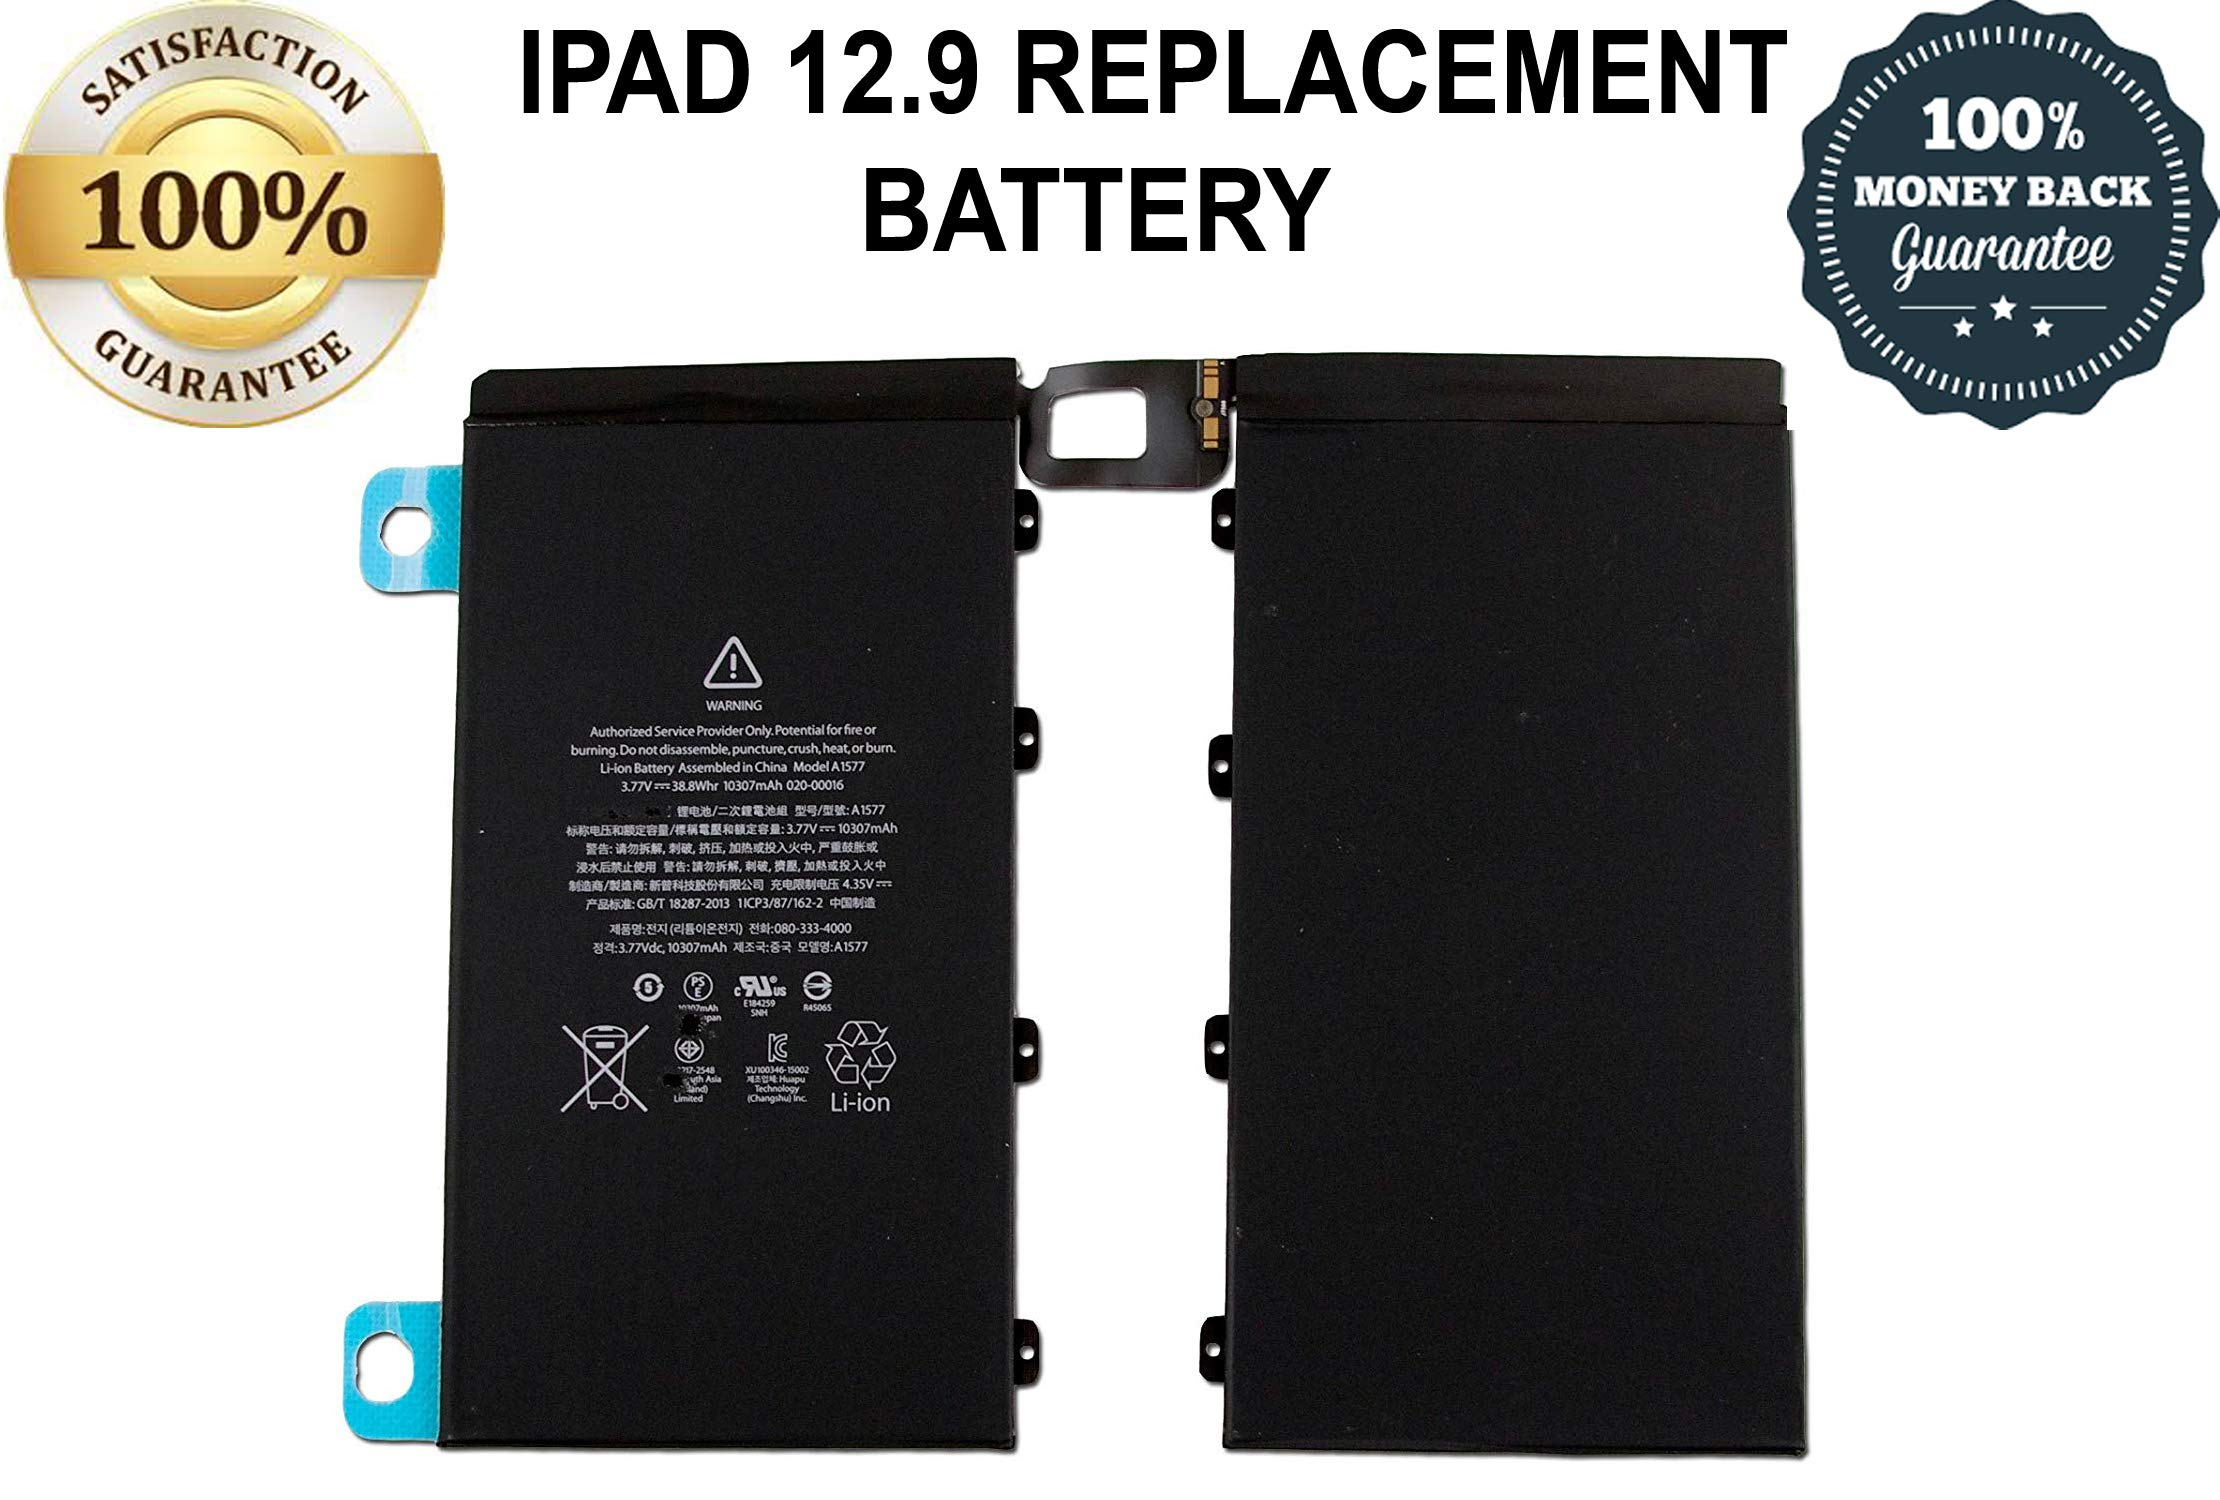 LONGLIFE 10315mAh A1577 Battery Replacement for iPad Pro 12.9 A1584, A1652 by Long Life